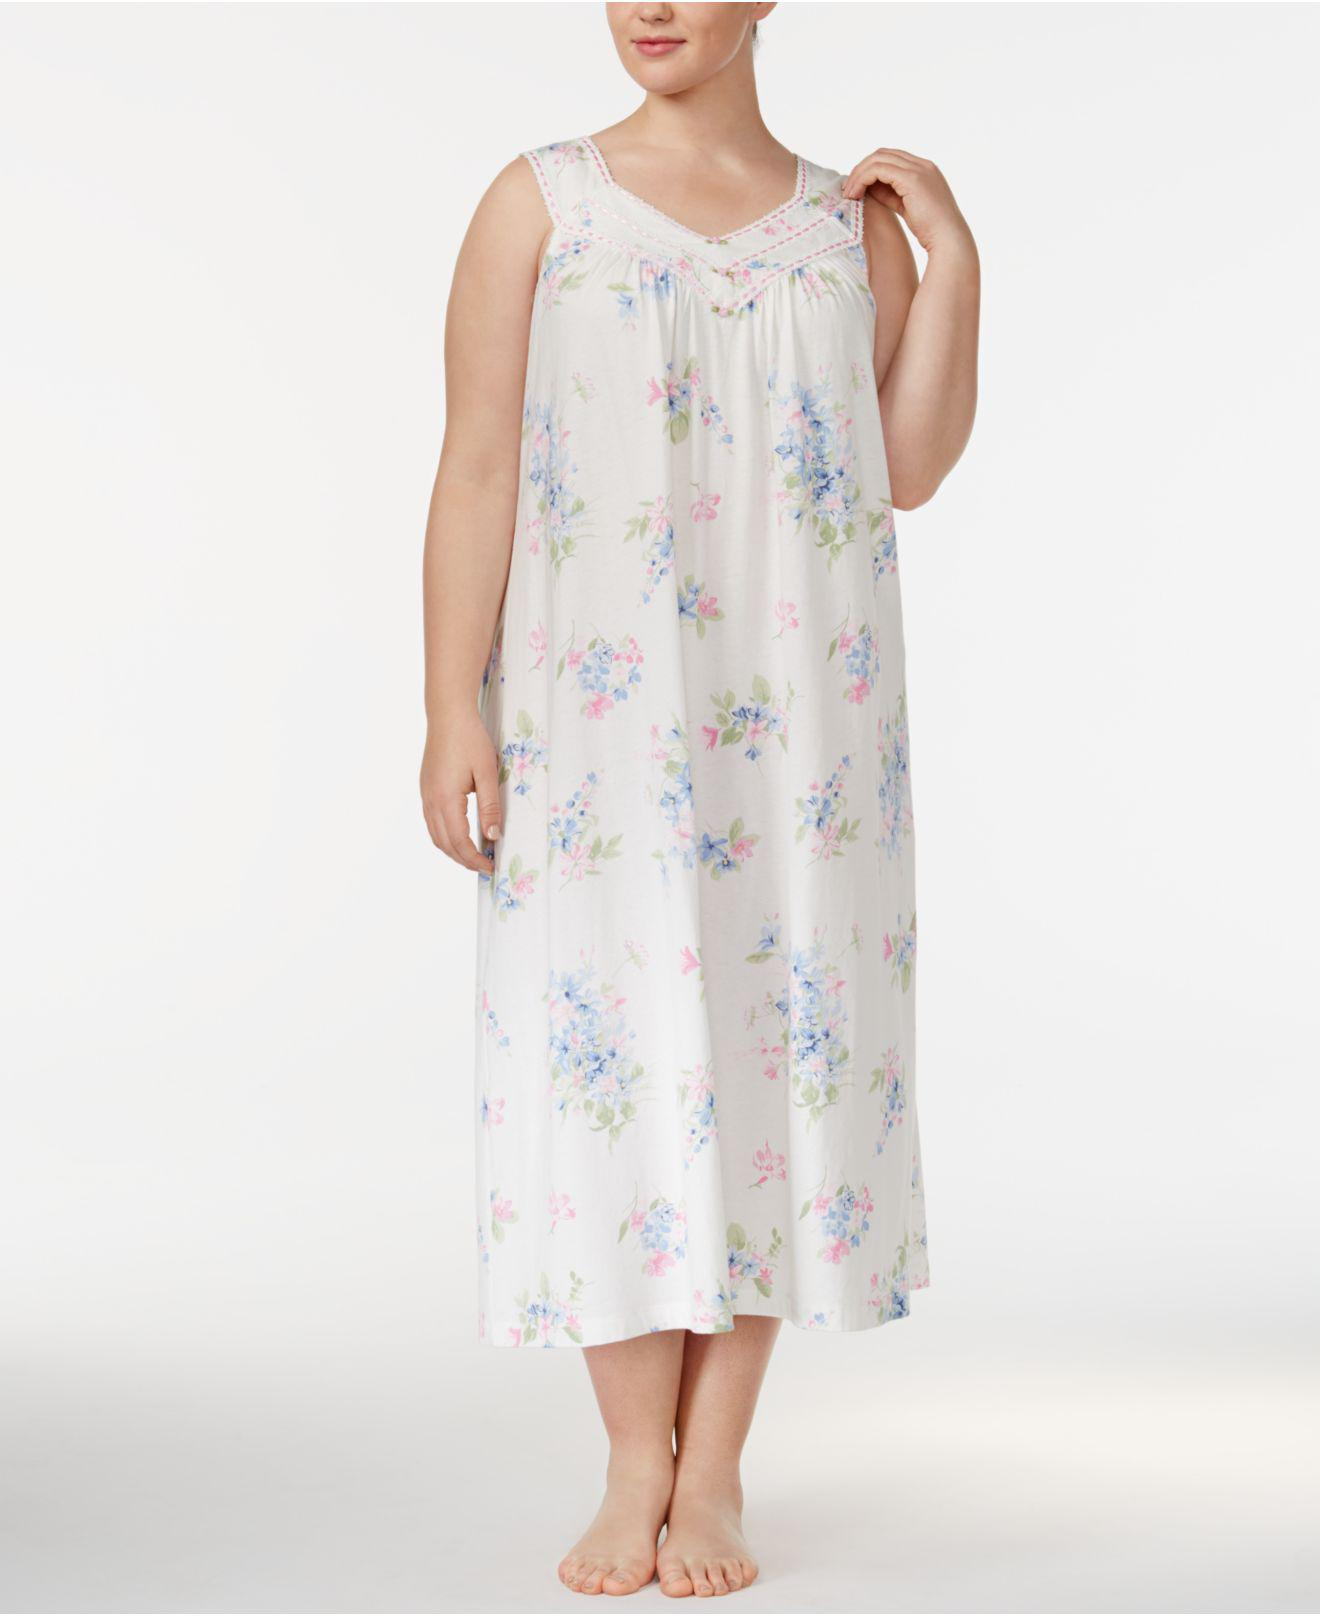 Lyst - Charter Club Plus Size Printed Cotton Knit Nightgown 3e1c457e7